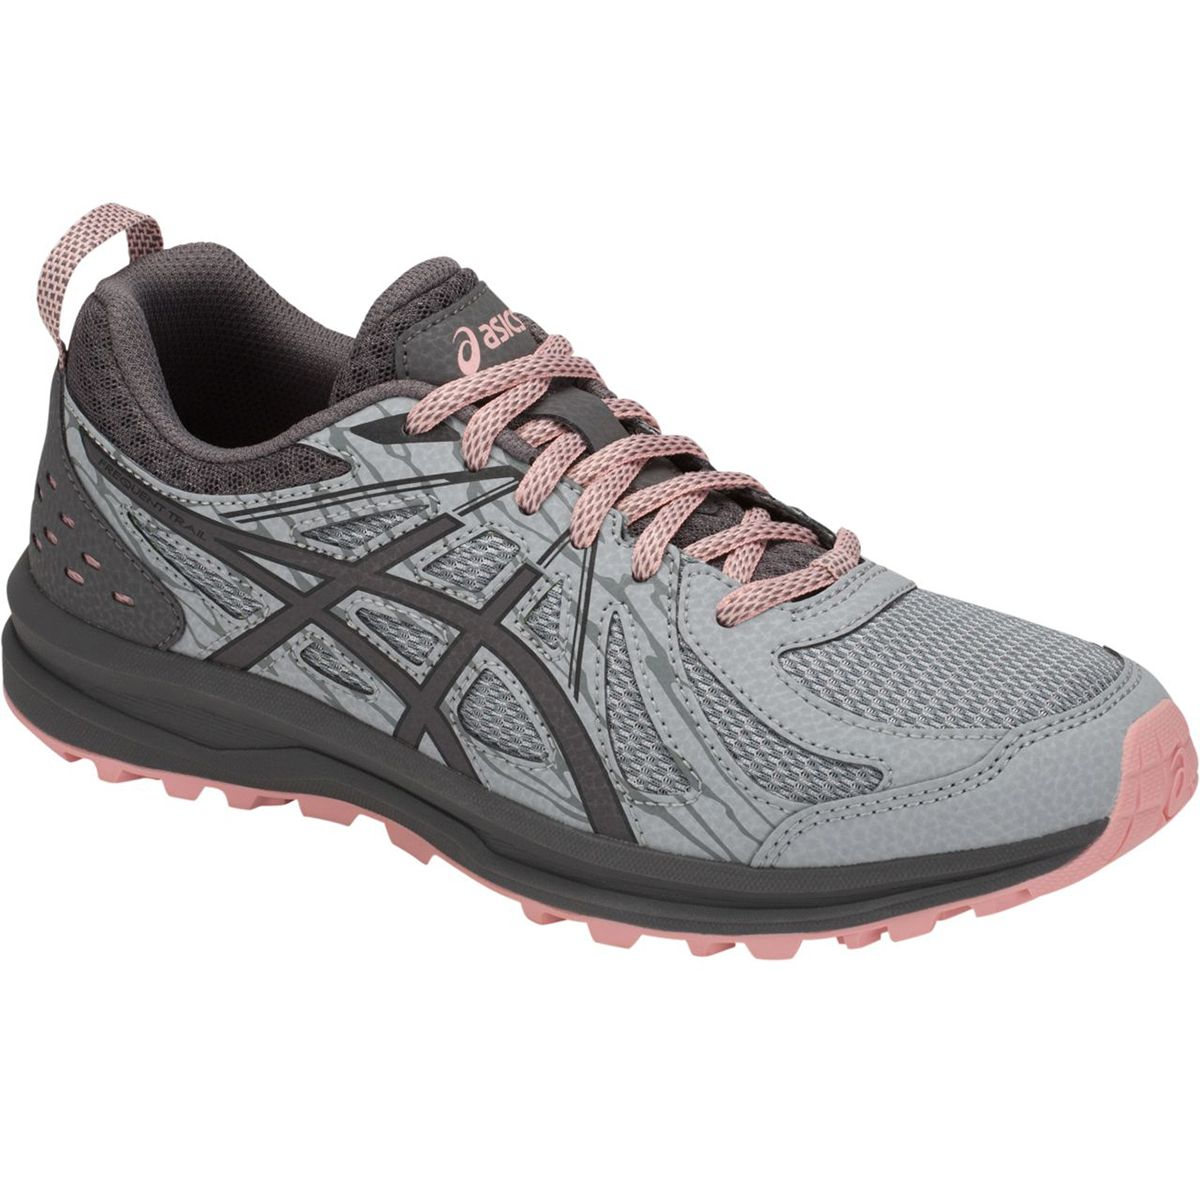 ASICS Women's Frequent Trail Running Shoes - Bob's Stores   Bob ...